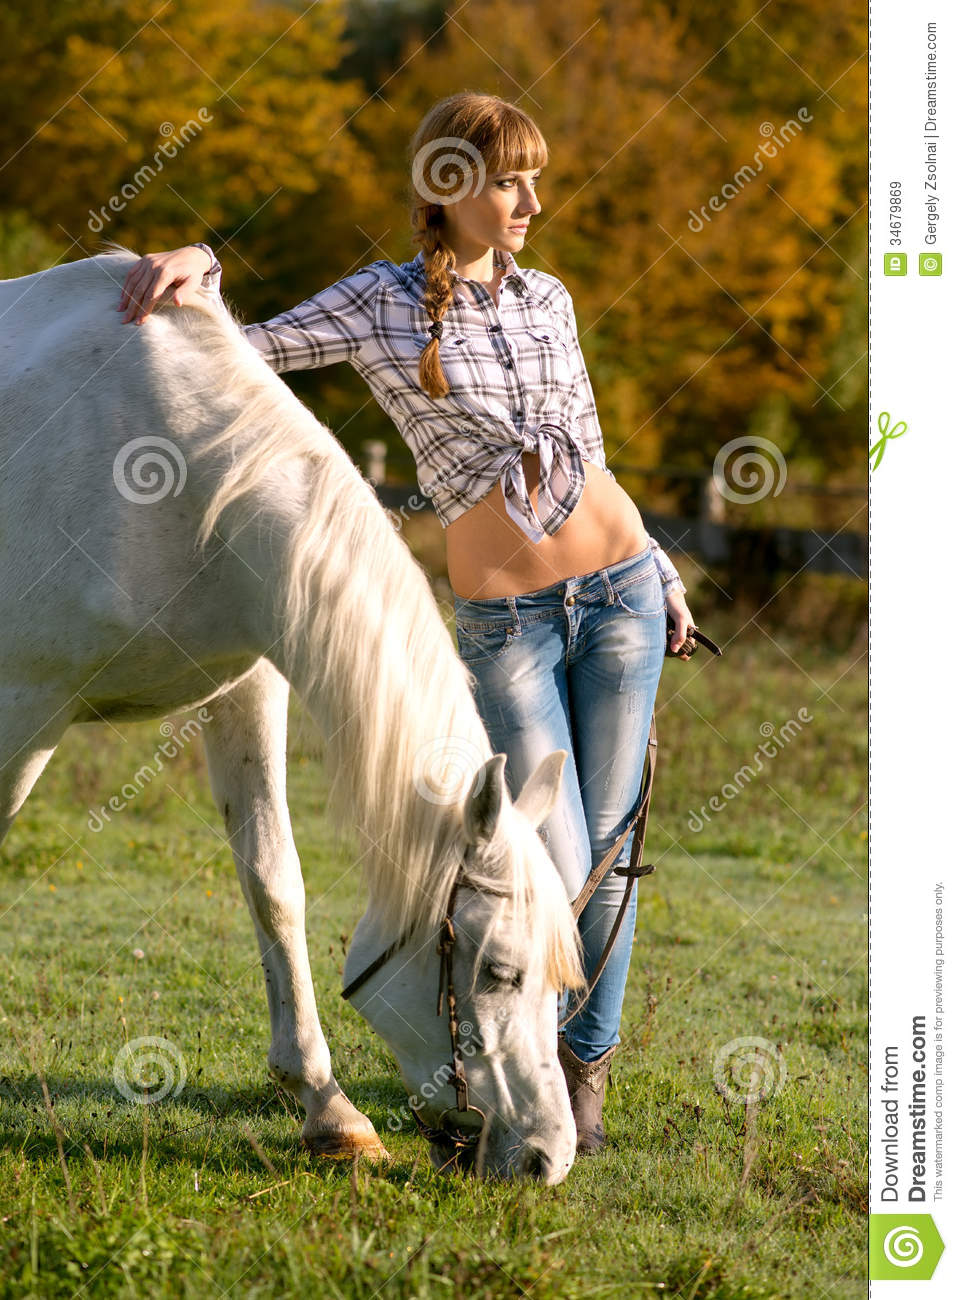 hindu single women in horse shoe Horse shoe's best 100% free online dating site meet loads of available single women in horse shoe with mingle2's horse shoe dating services find a girlfriend or lover in horse shoe, or just have fun flirting online with horse shoe single girls.